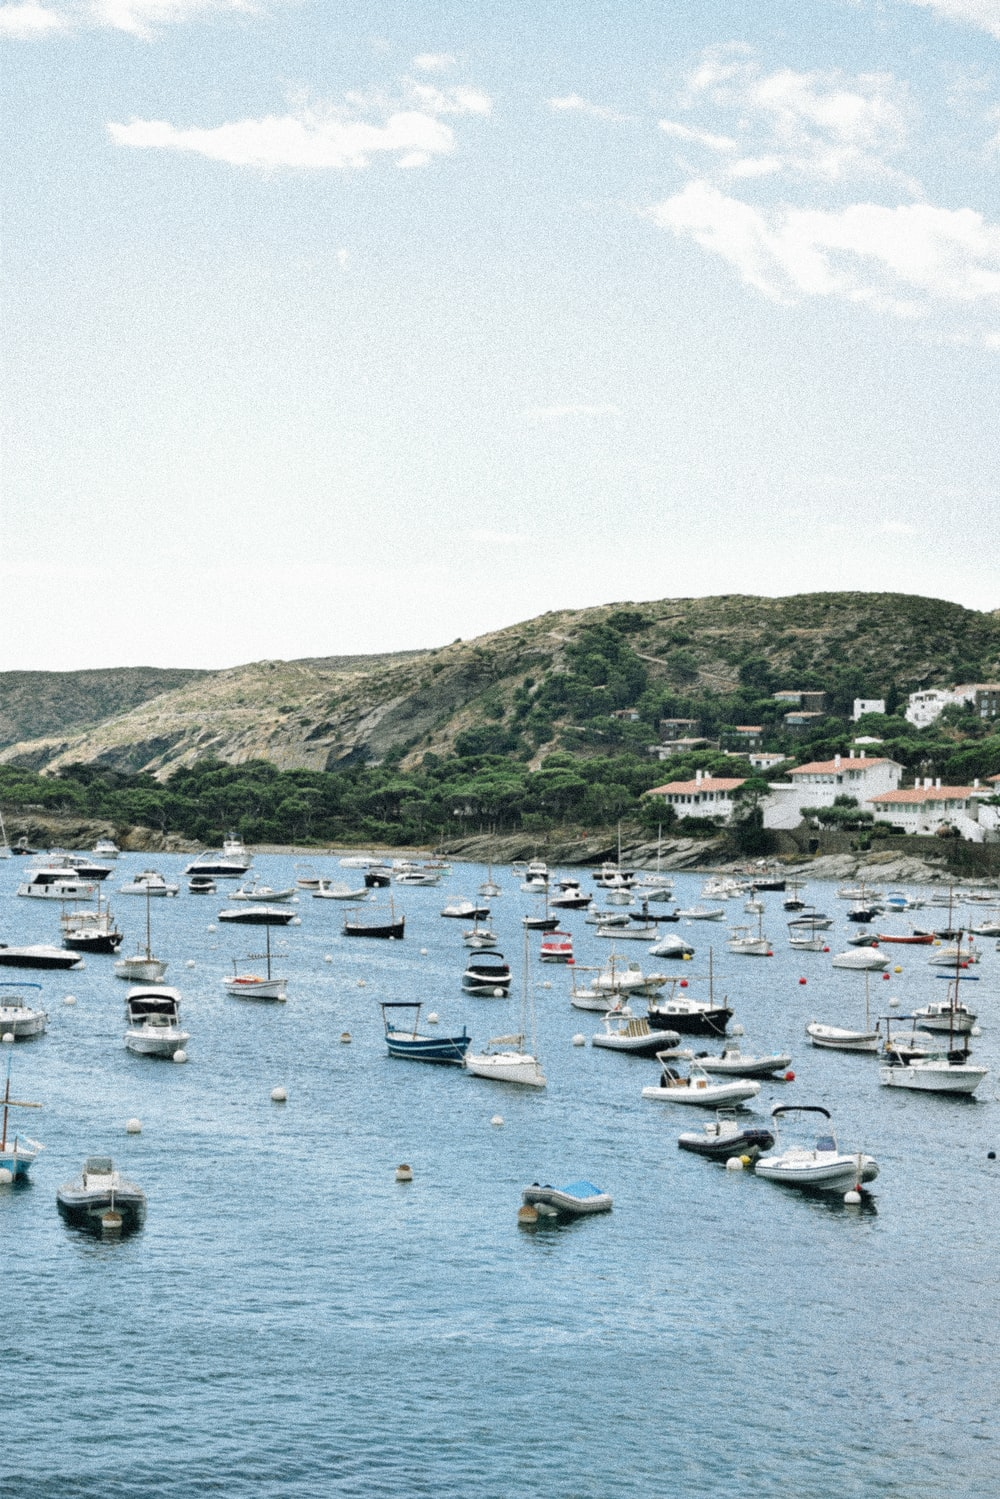 white boats on sea near green mountain during daytime